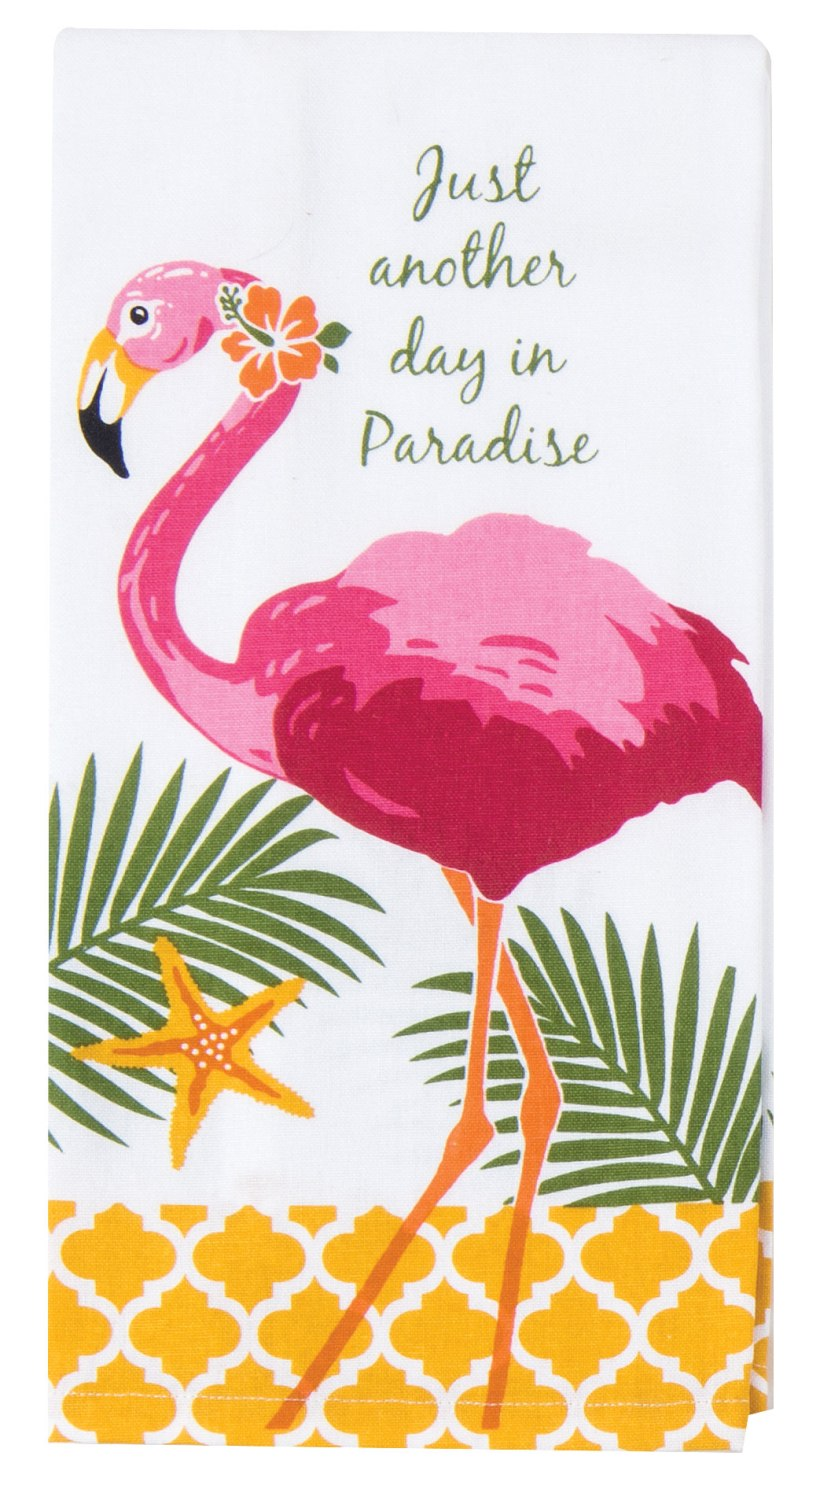 Another Day In Paradise Hot Pink Flamingo Tea Kitchen Dish Towel by Kay Dee